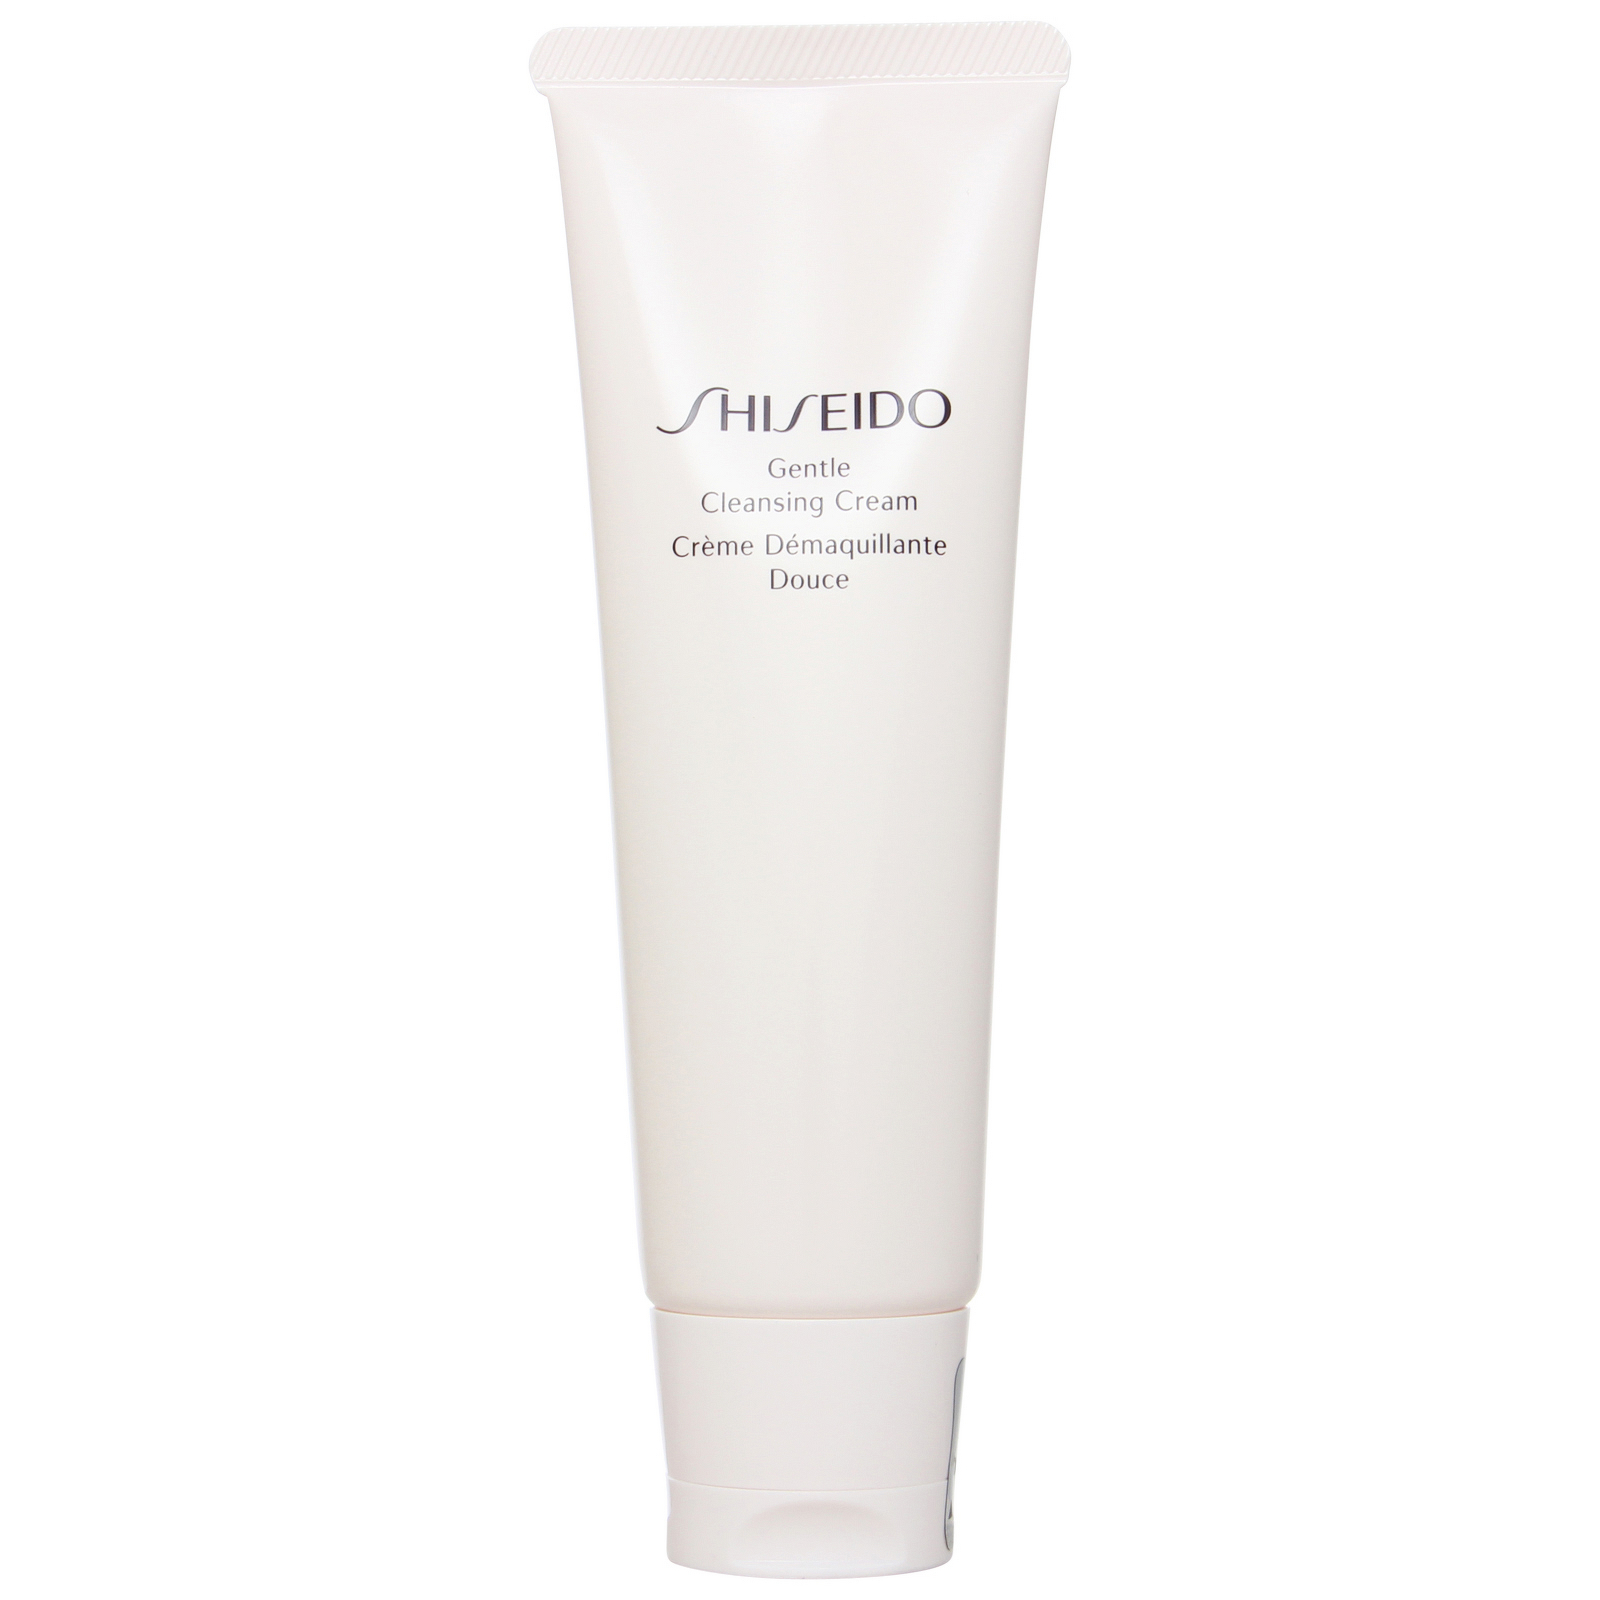 Shiseido Essentials Gentle Cleansing Cream 125ml / 4.3 oz.